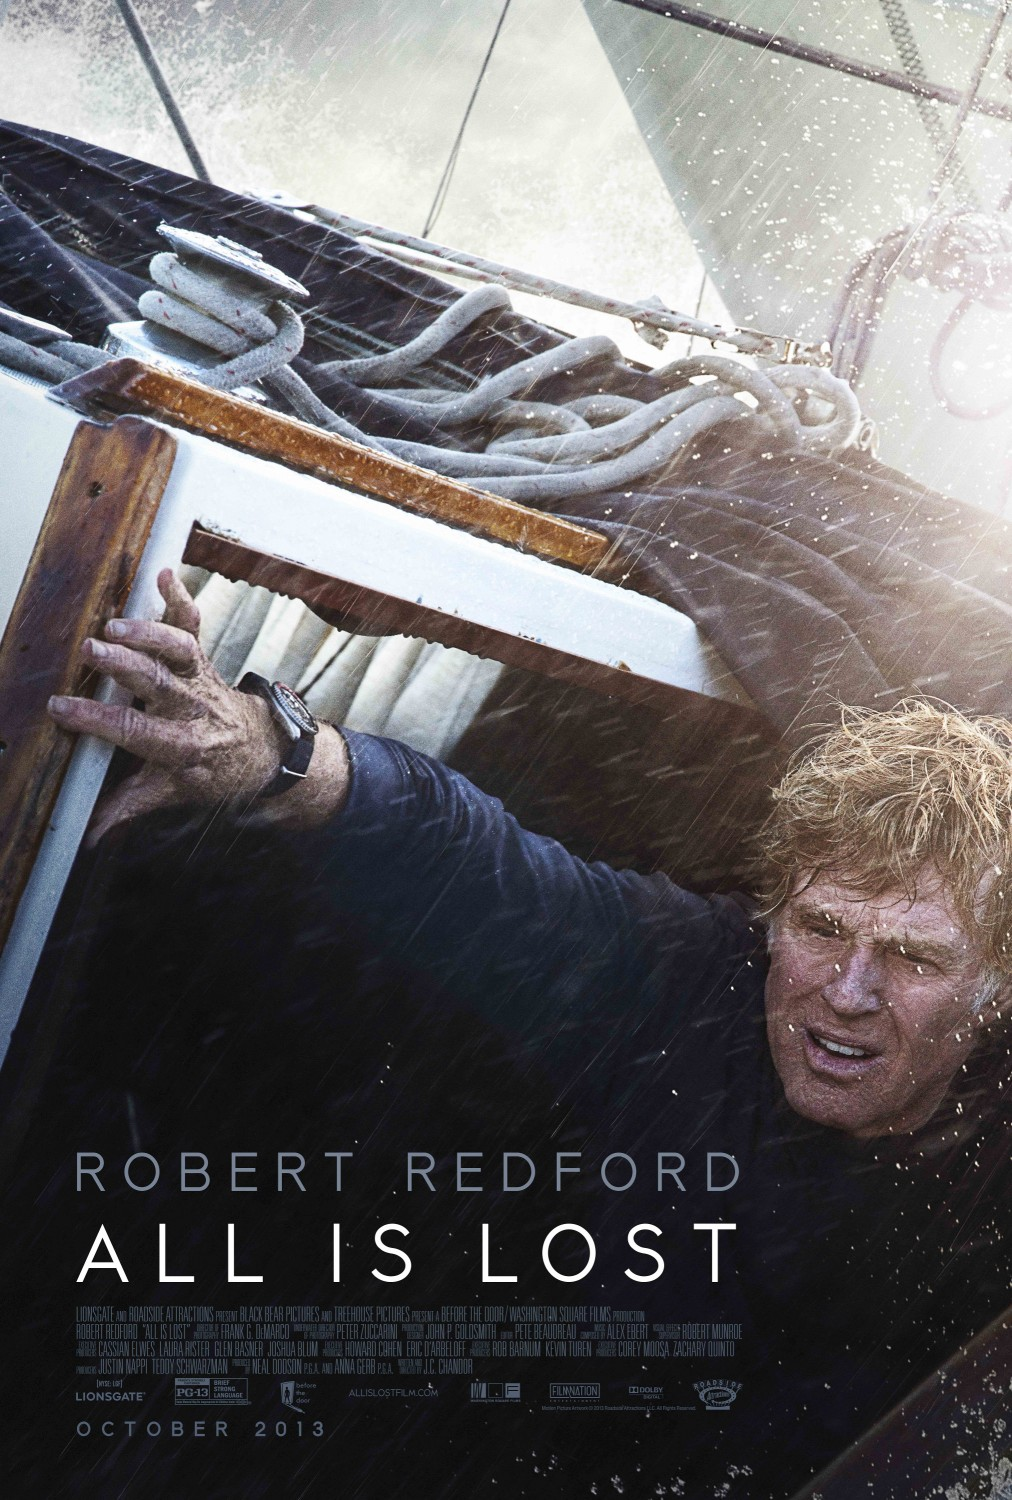 All Is Lost-Official Poster Banner PROMO POSTER-11NOVEMBRO2013-03